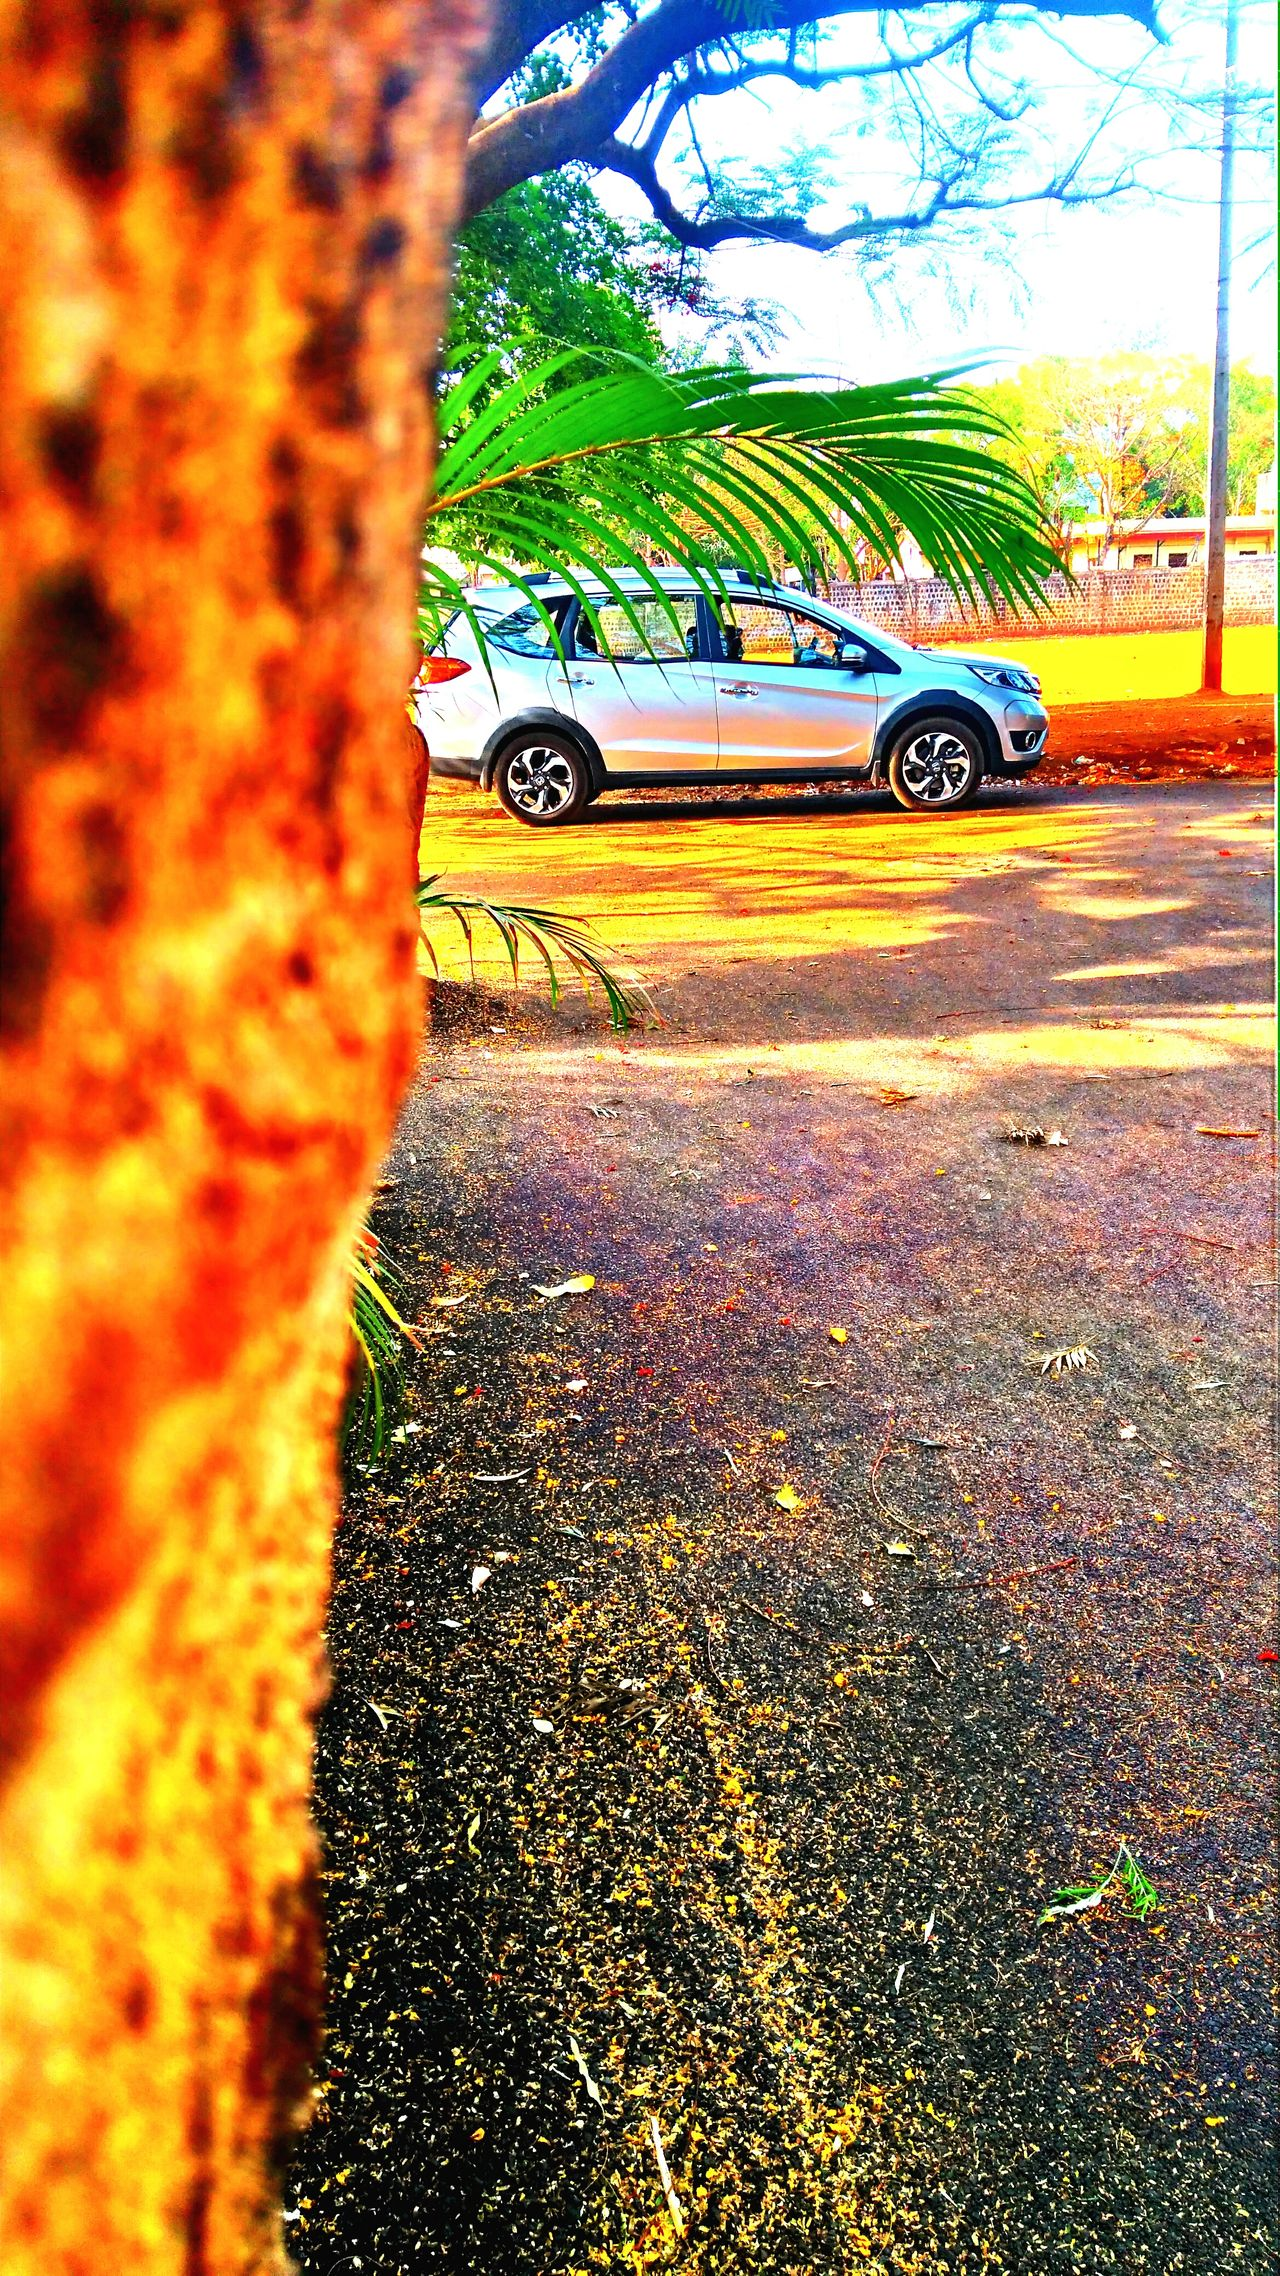 Clicked it!